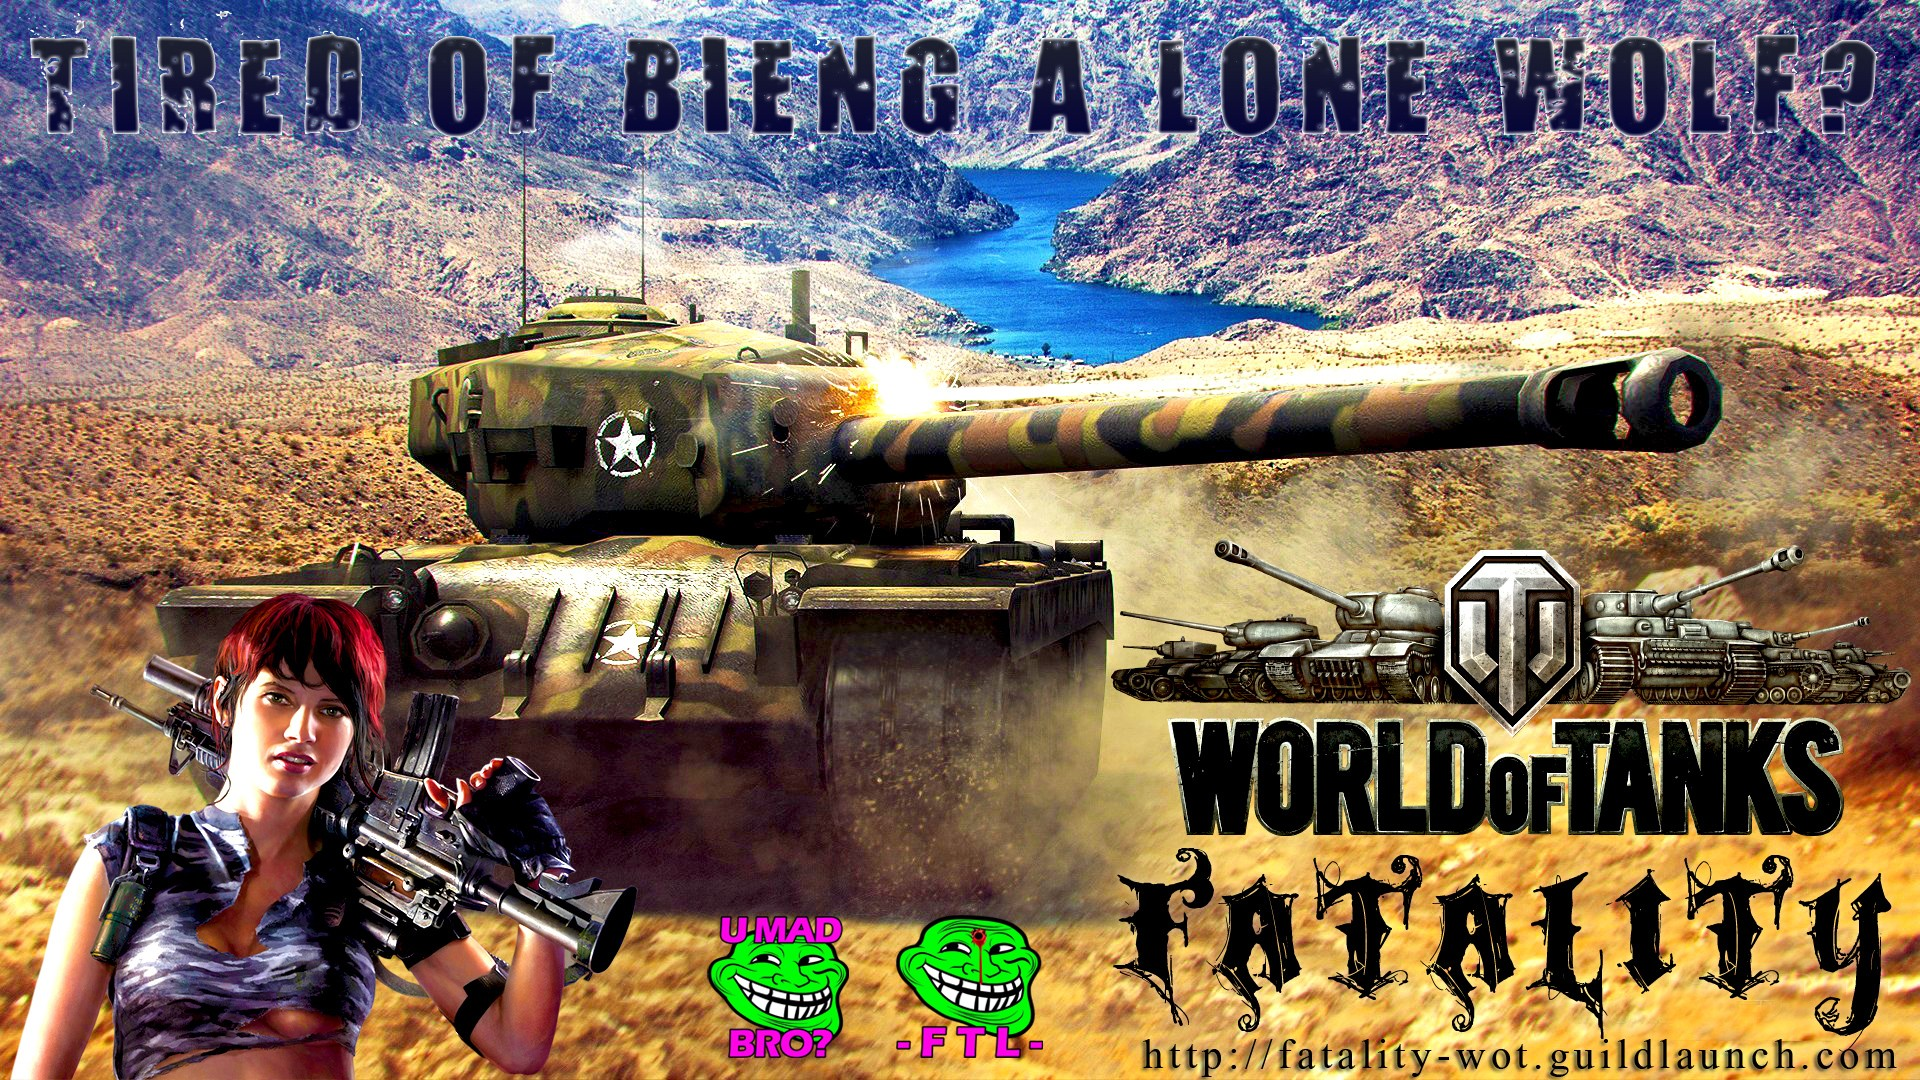 T34 HEAVY TANK RECRUITMENT -FTL- FTLTY FATALITY FATAL1TY CLAN WALLPAPER WORLD OF TANKS